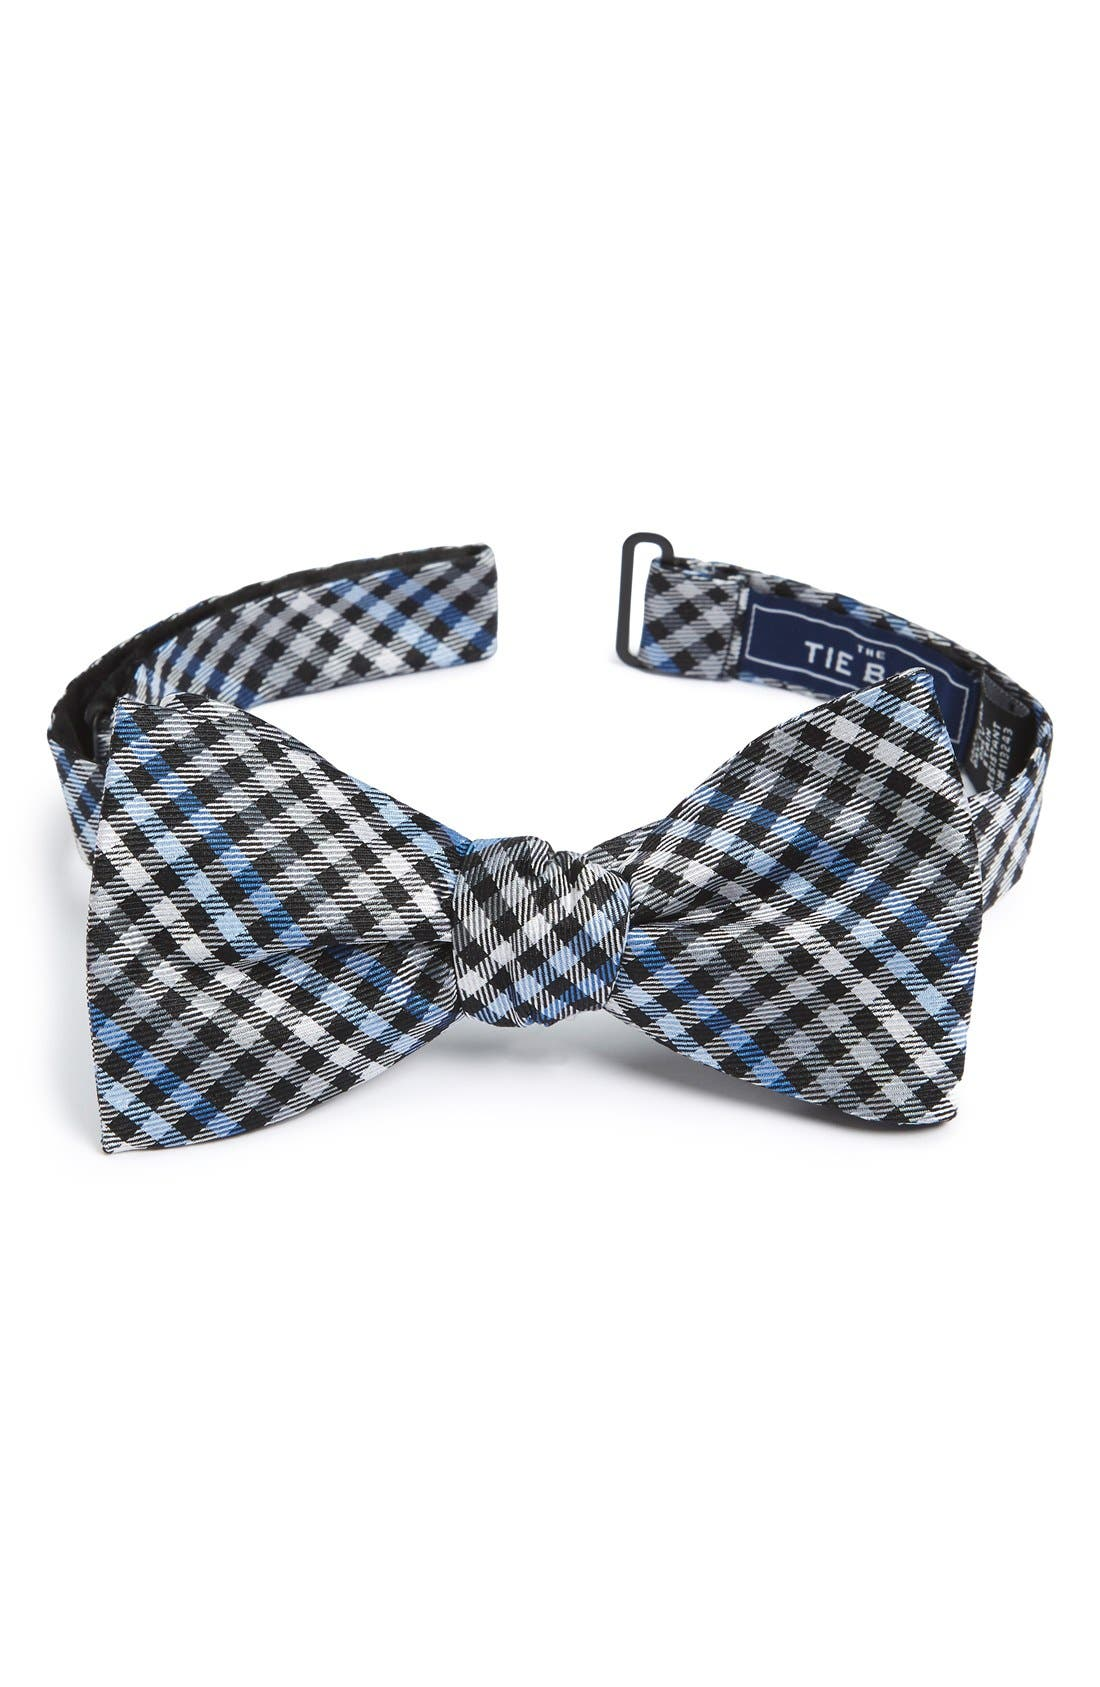 Main Image - The Tie Bar Plaid Bow Tie